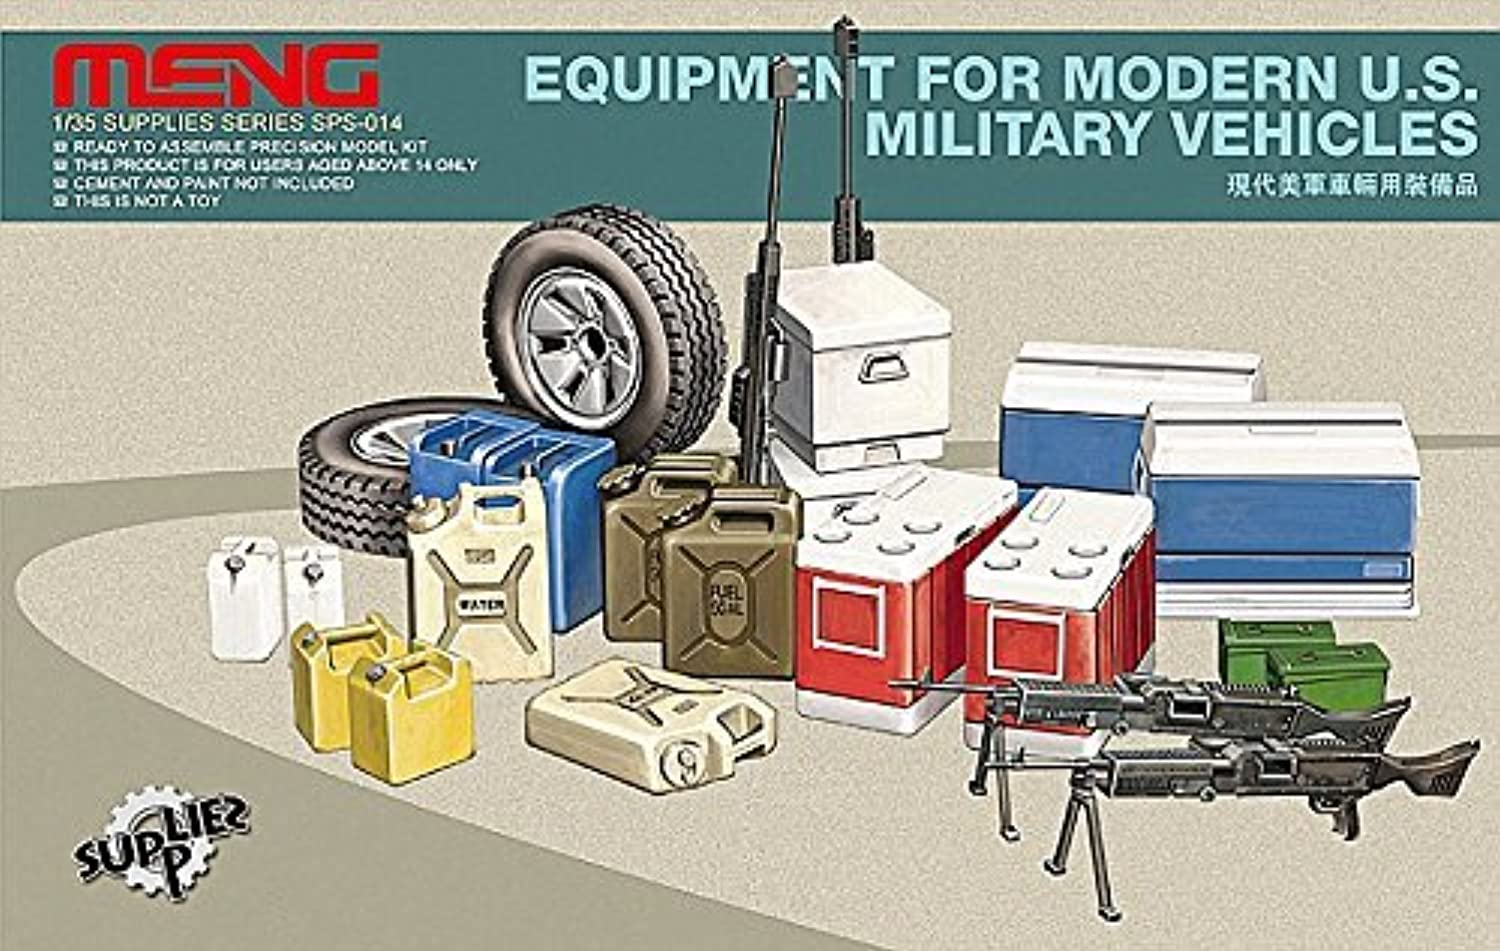 Meng 1 35 Scale Equipment for Modern US Military Vehicles Kit by MENG